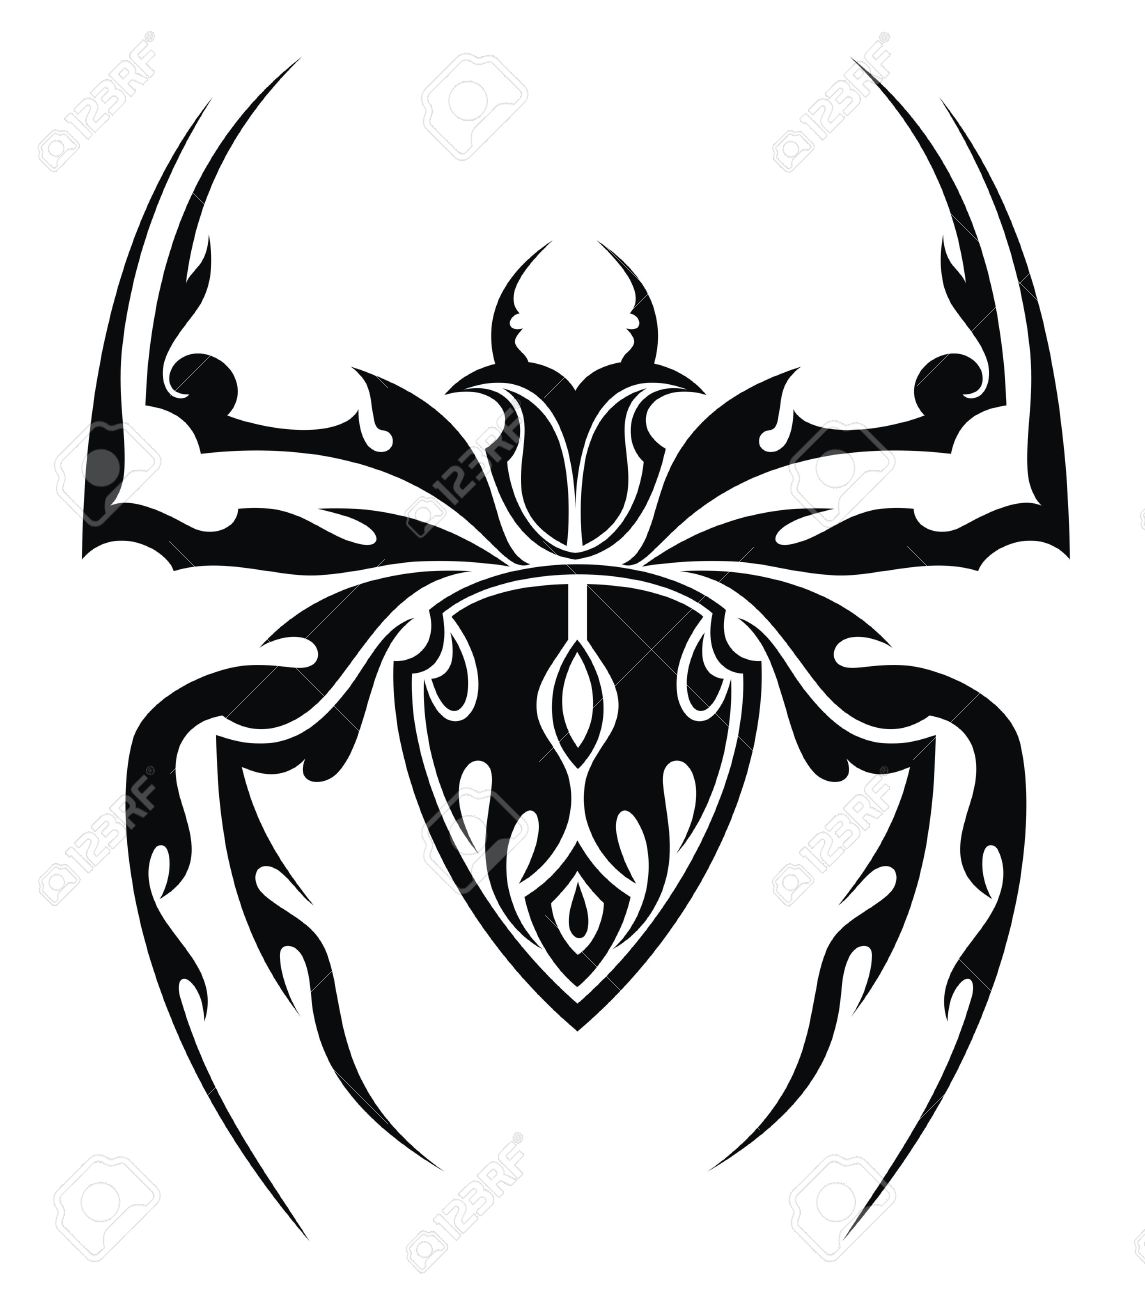 1dff3a074 Awesome Black Tribal Spider Tattoo Design